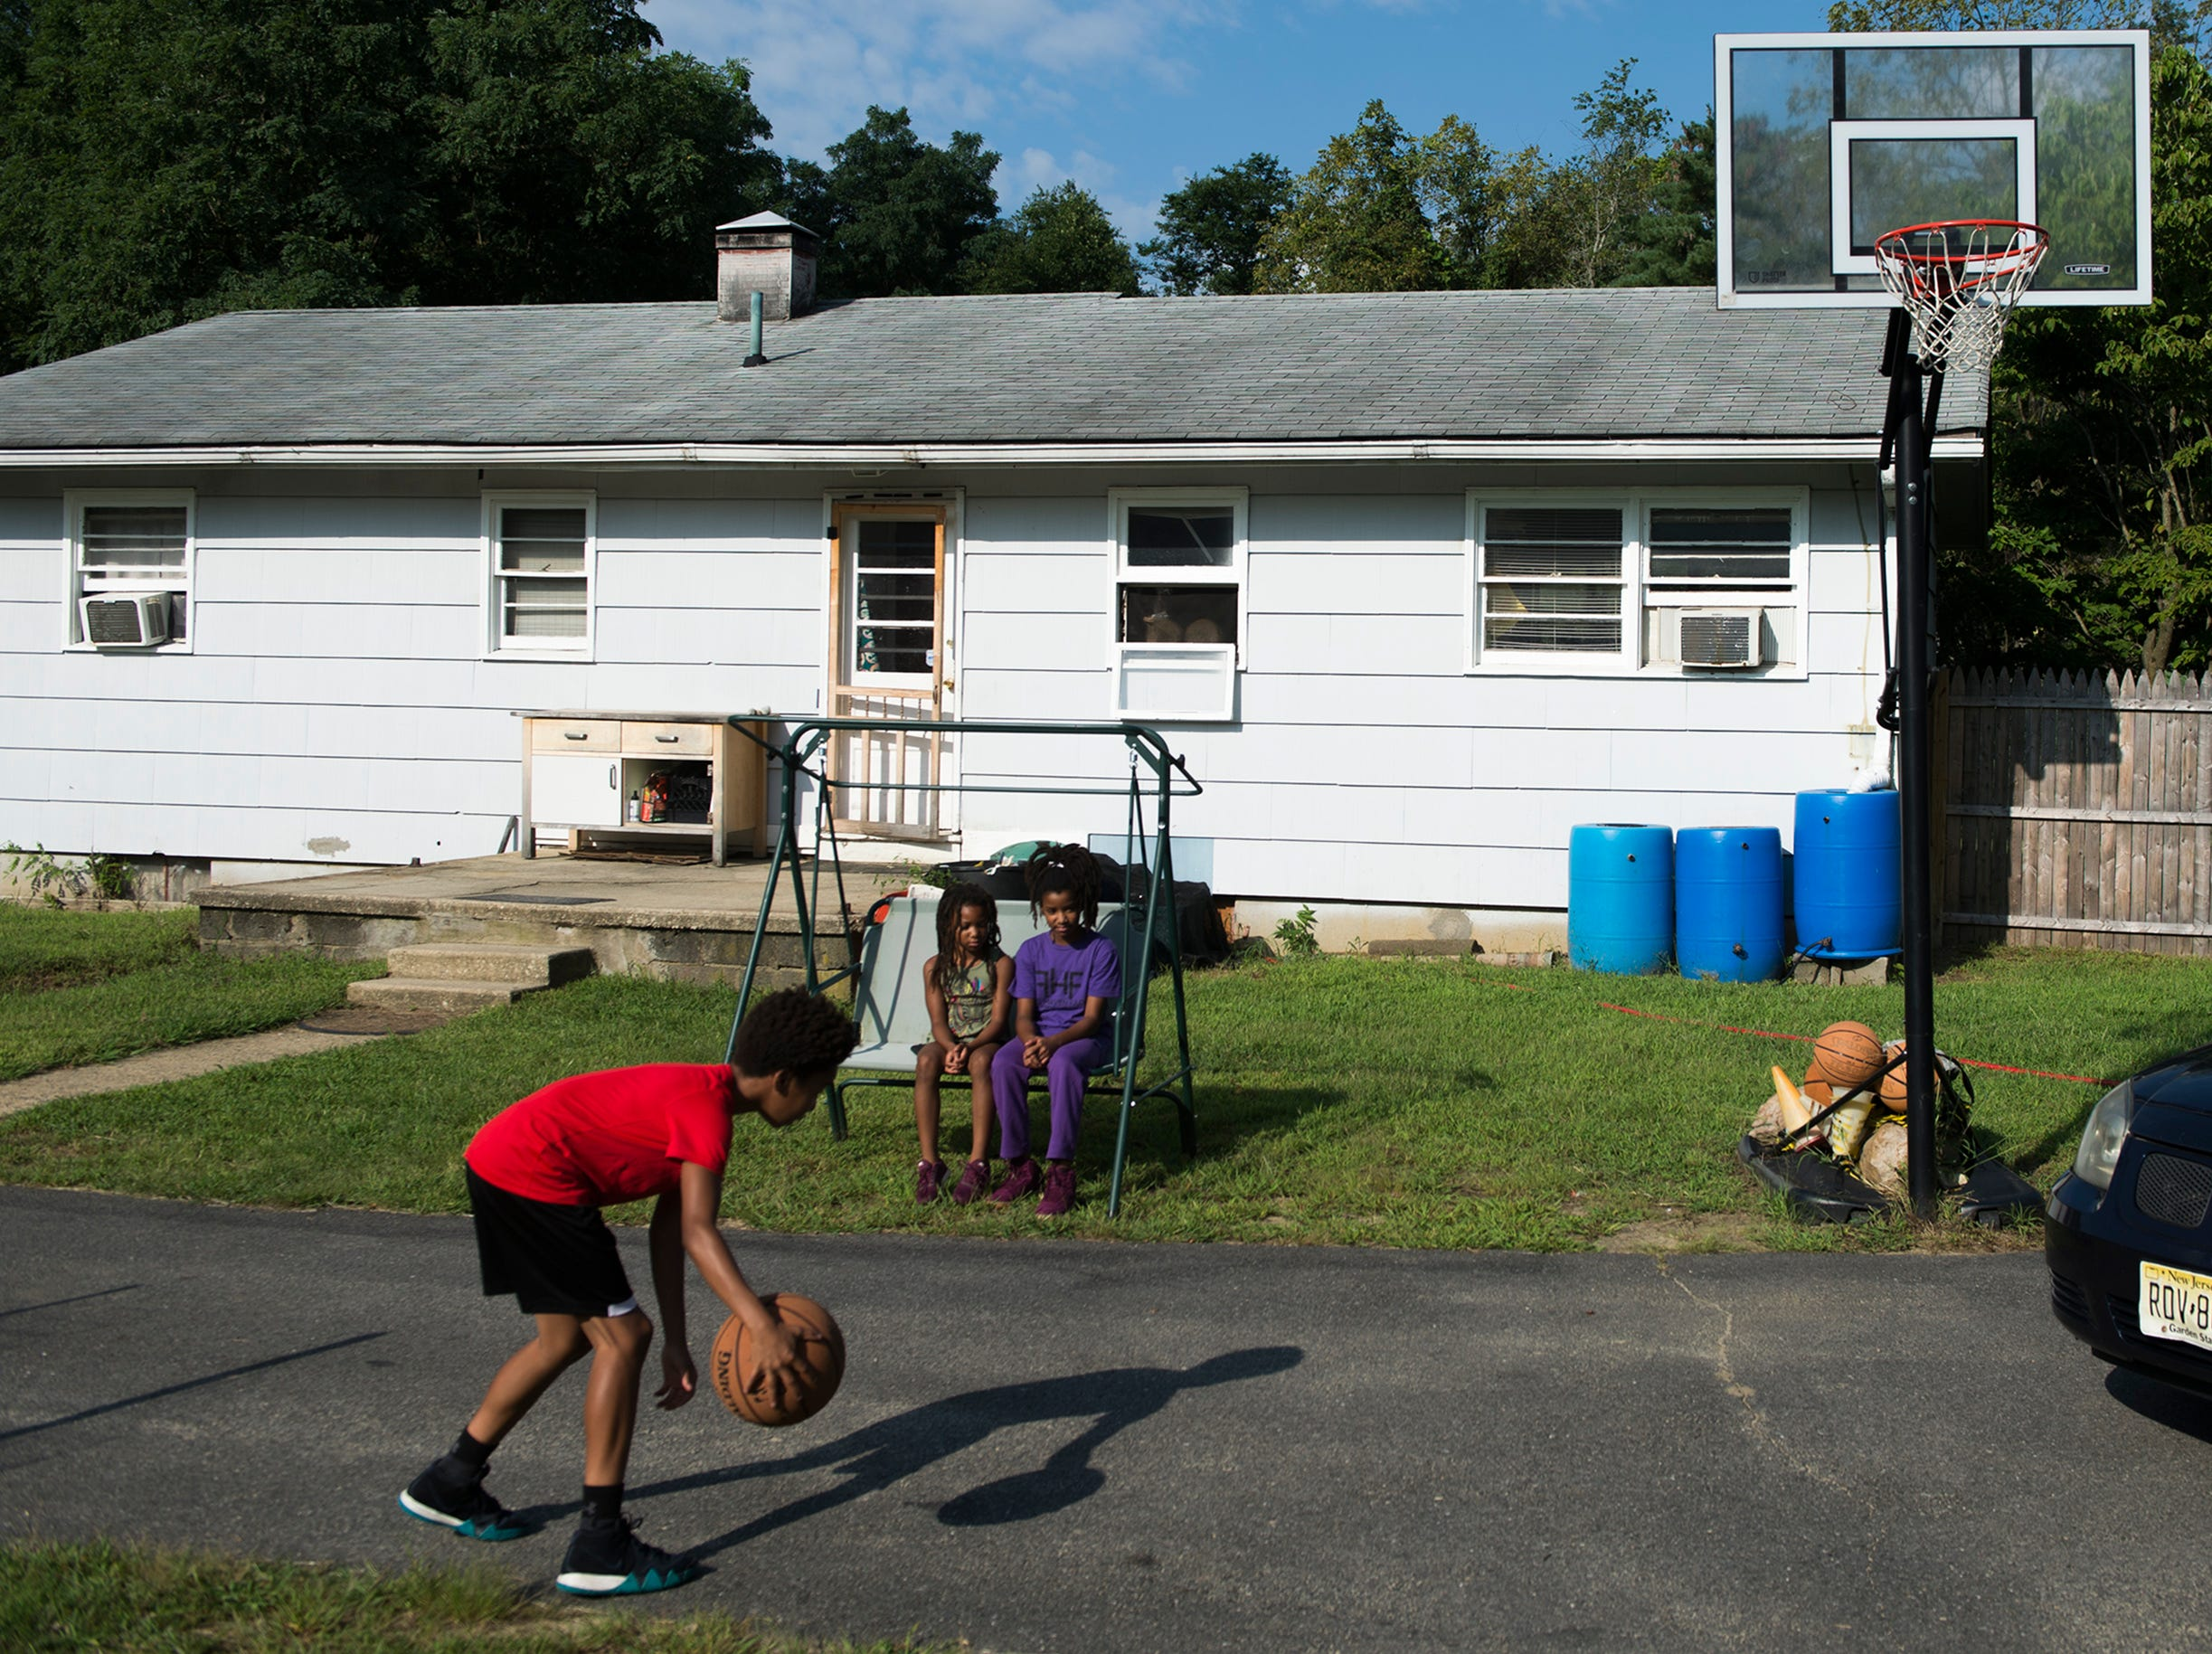 Satifa Hall, 12, plays basketball in the driveway of his home Thursday, Aug. 23, 2018 in Lawnside, N.J.